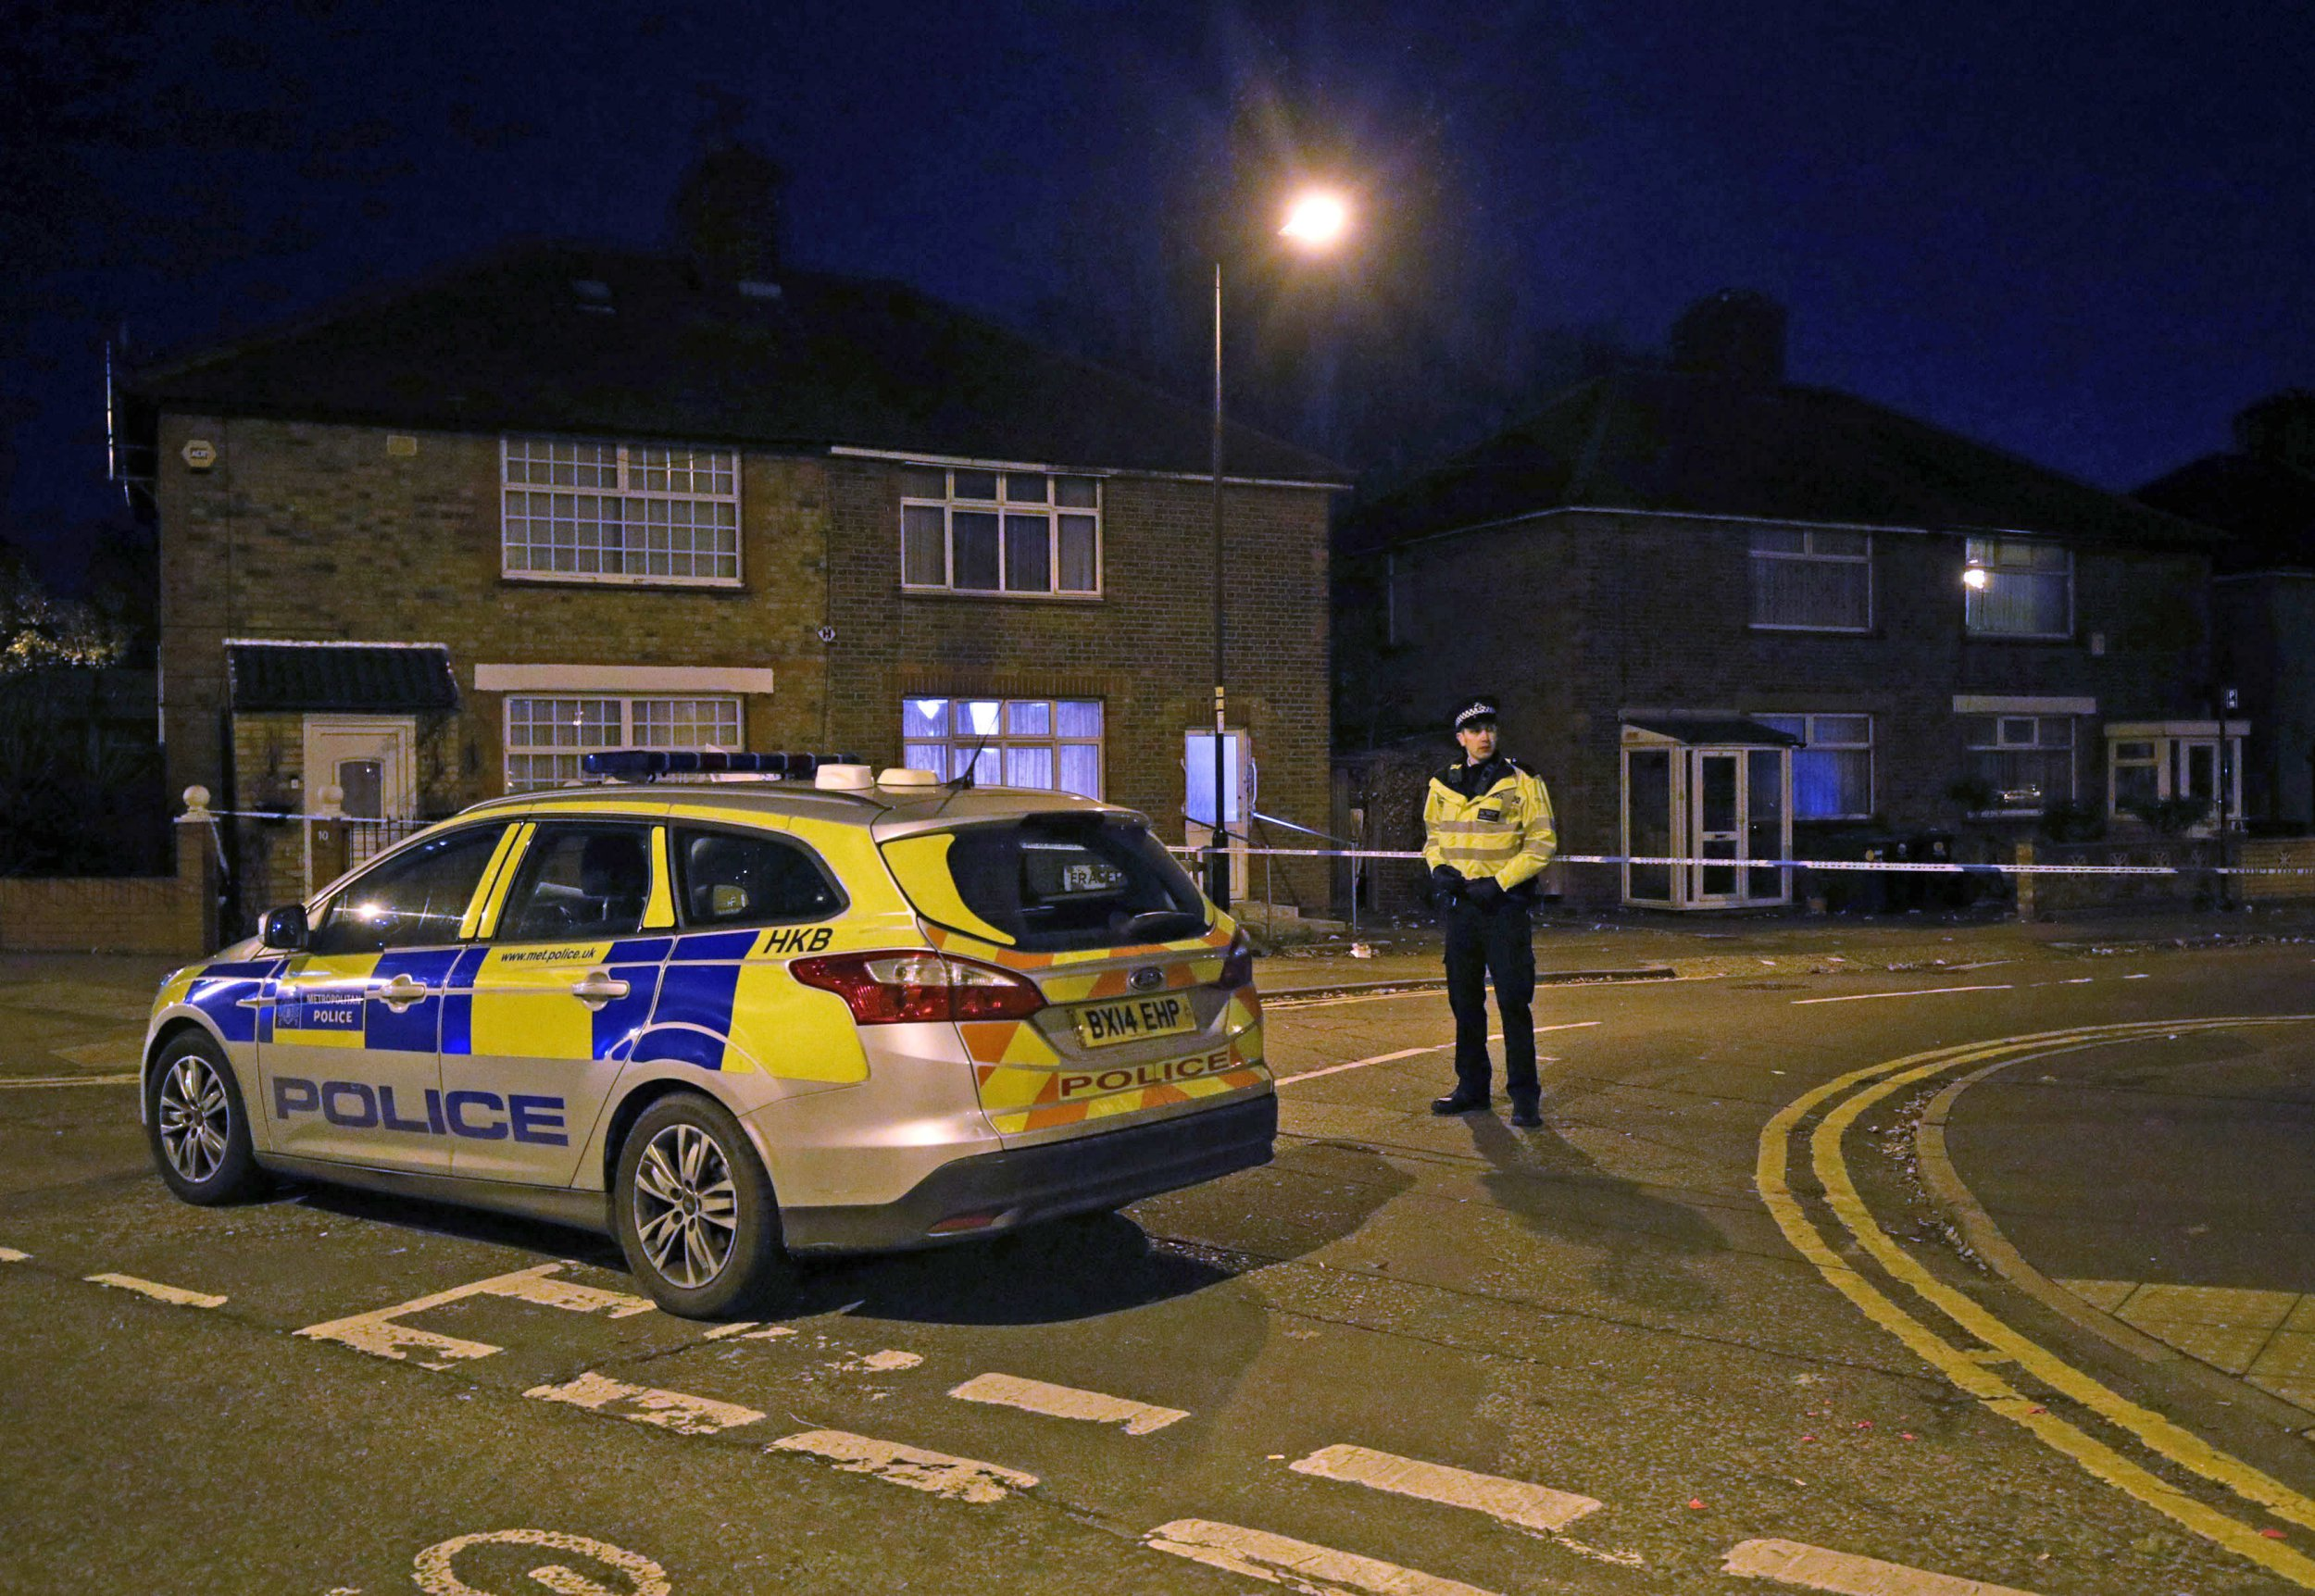 Police at the scene in Edmonton, north London after four men in their 20s were hospitalised following a quadruple stabbing. PRESS ASSOCIATION Photo. Picture date: Sunday November 18, 2018. All the injured men were taken to north London hospitals, with police waiting for an update on their condition. Two vehicles that had been in a collision were also found at the scene. See PA story POLICE Edmonton. Photo credit should read: Yui Mok/PA Wire